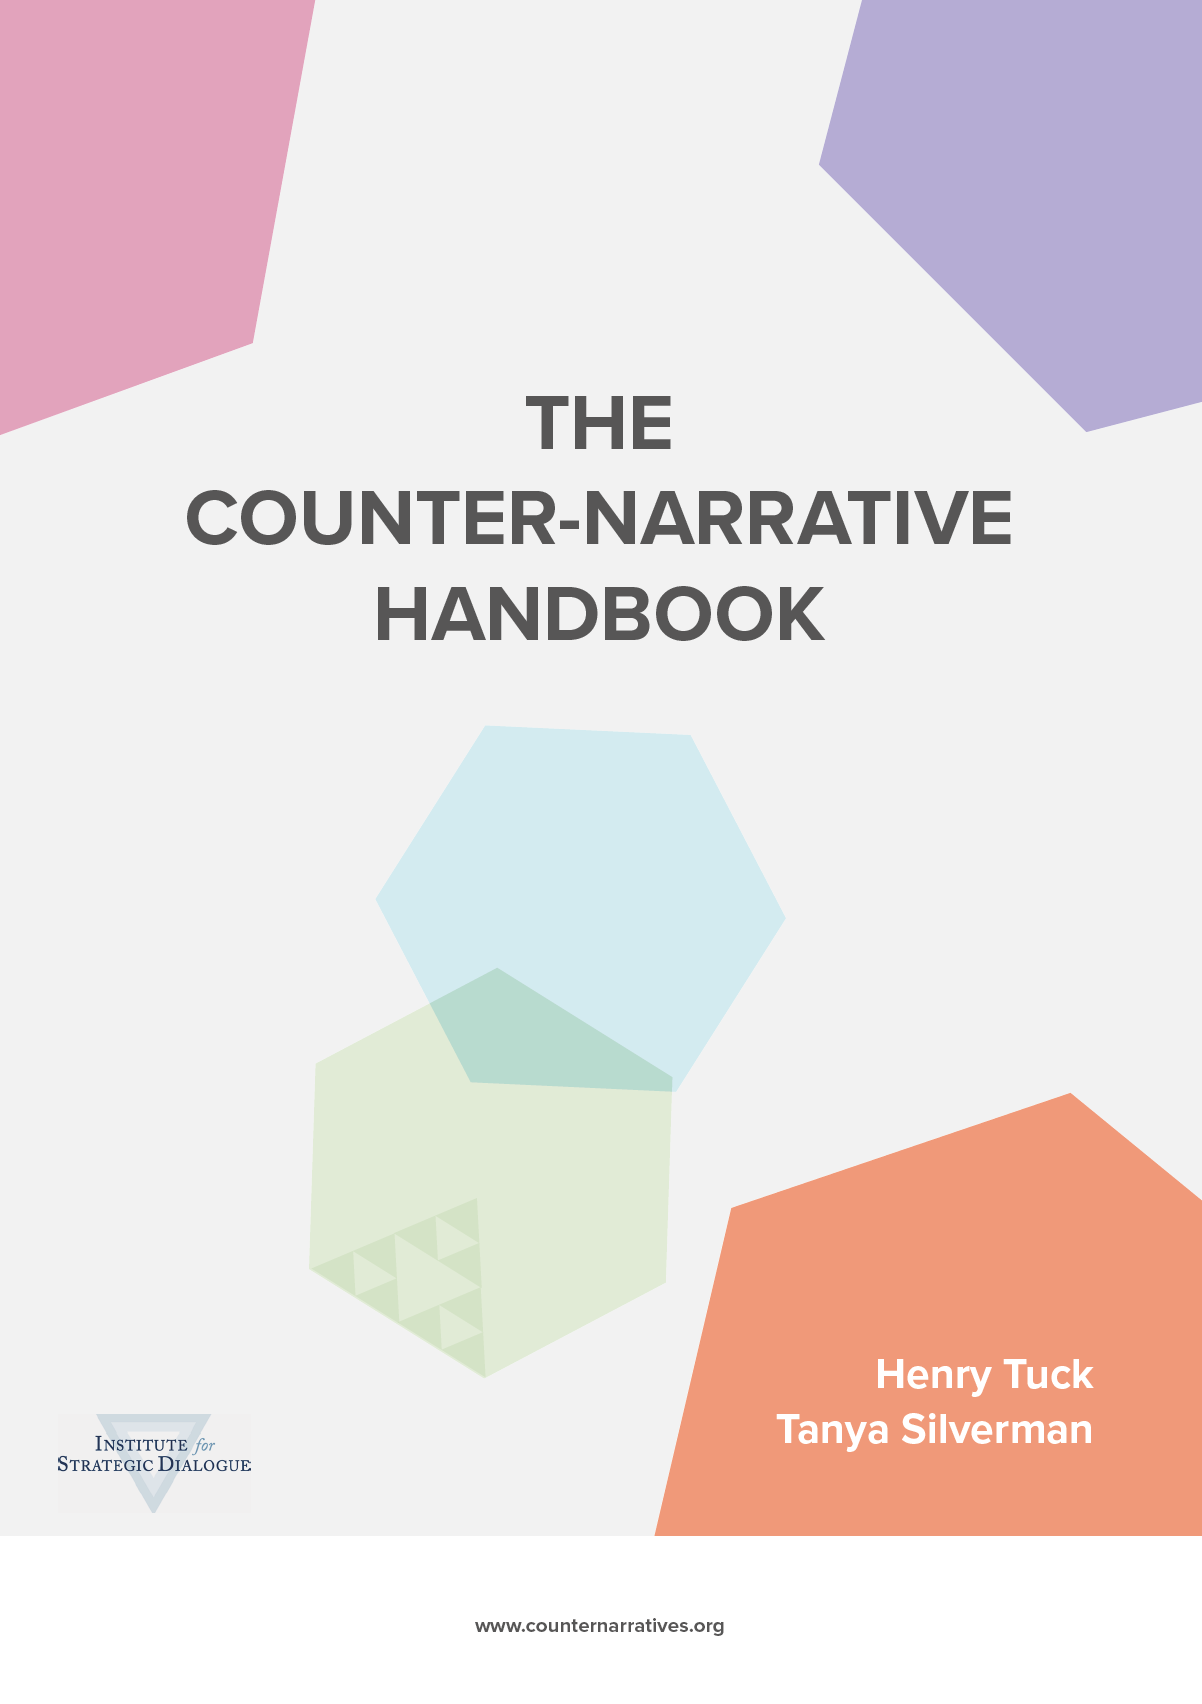 The Counter-narrative Handbook